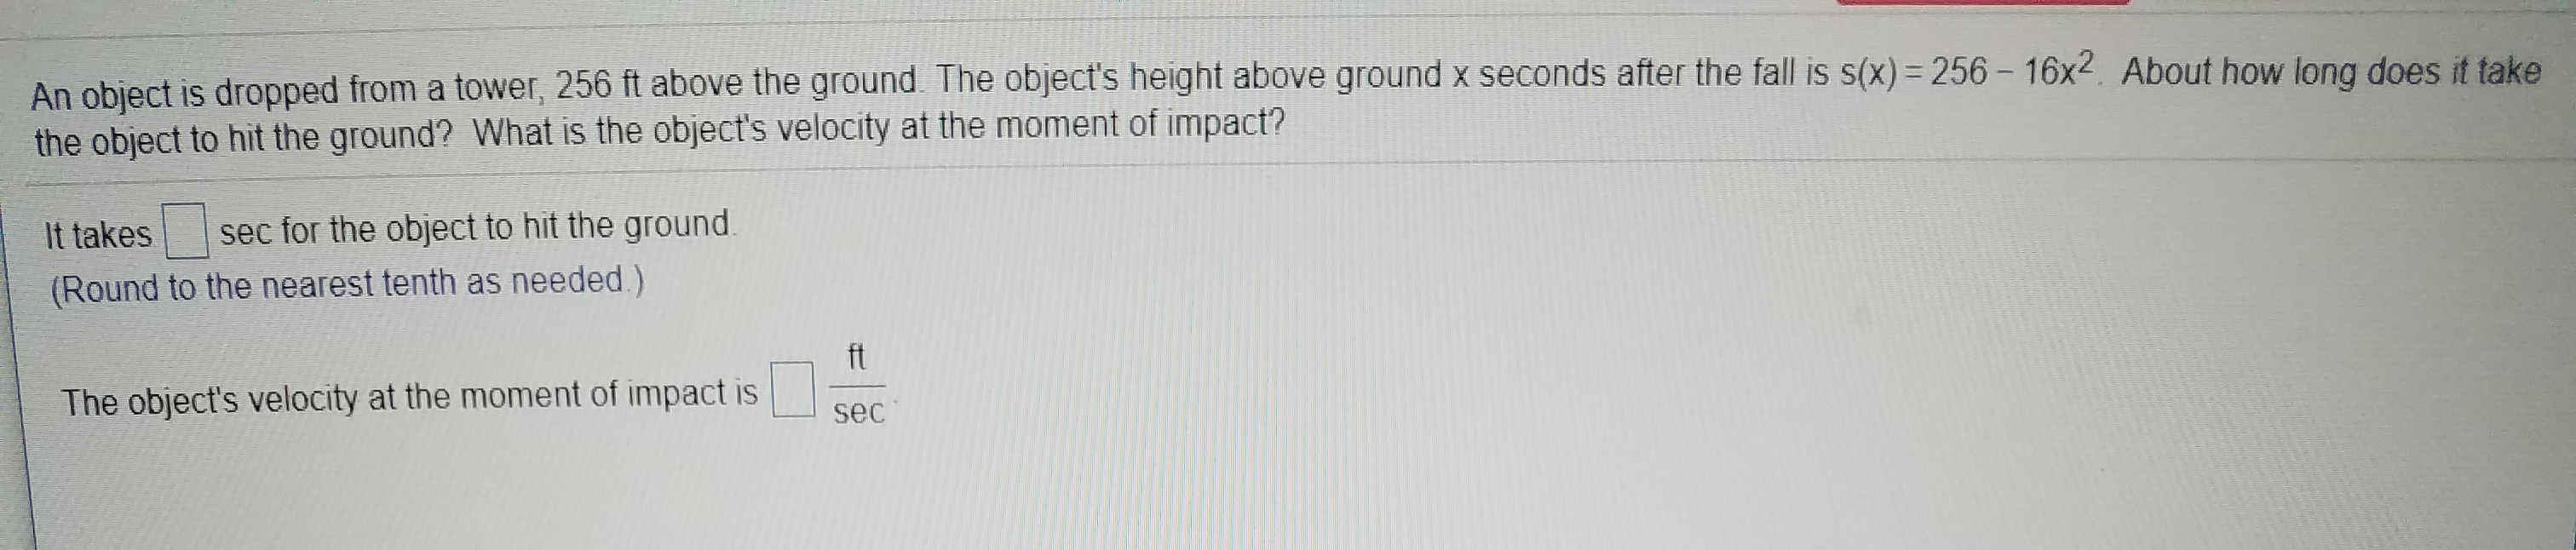 An object is dropped from a tower, 256 ft above the ground. The object's height above ground x seconds after the fall is s(x) 256-16x2. About how long does it take the object to hit the ground? What is the object's velocity at the moment of impact? sec for the object to hit the ground It takes (Round to the nearest tenth as needed.) ft The object's velocity at the moment of impact is sec